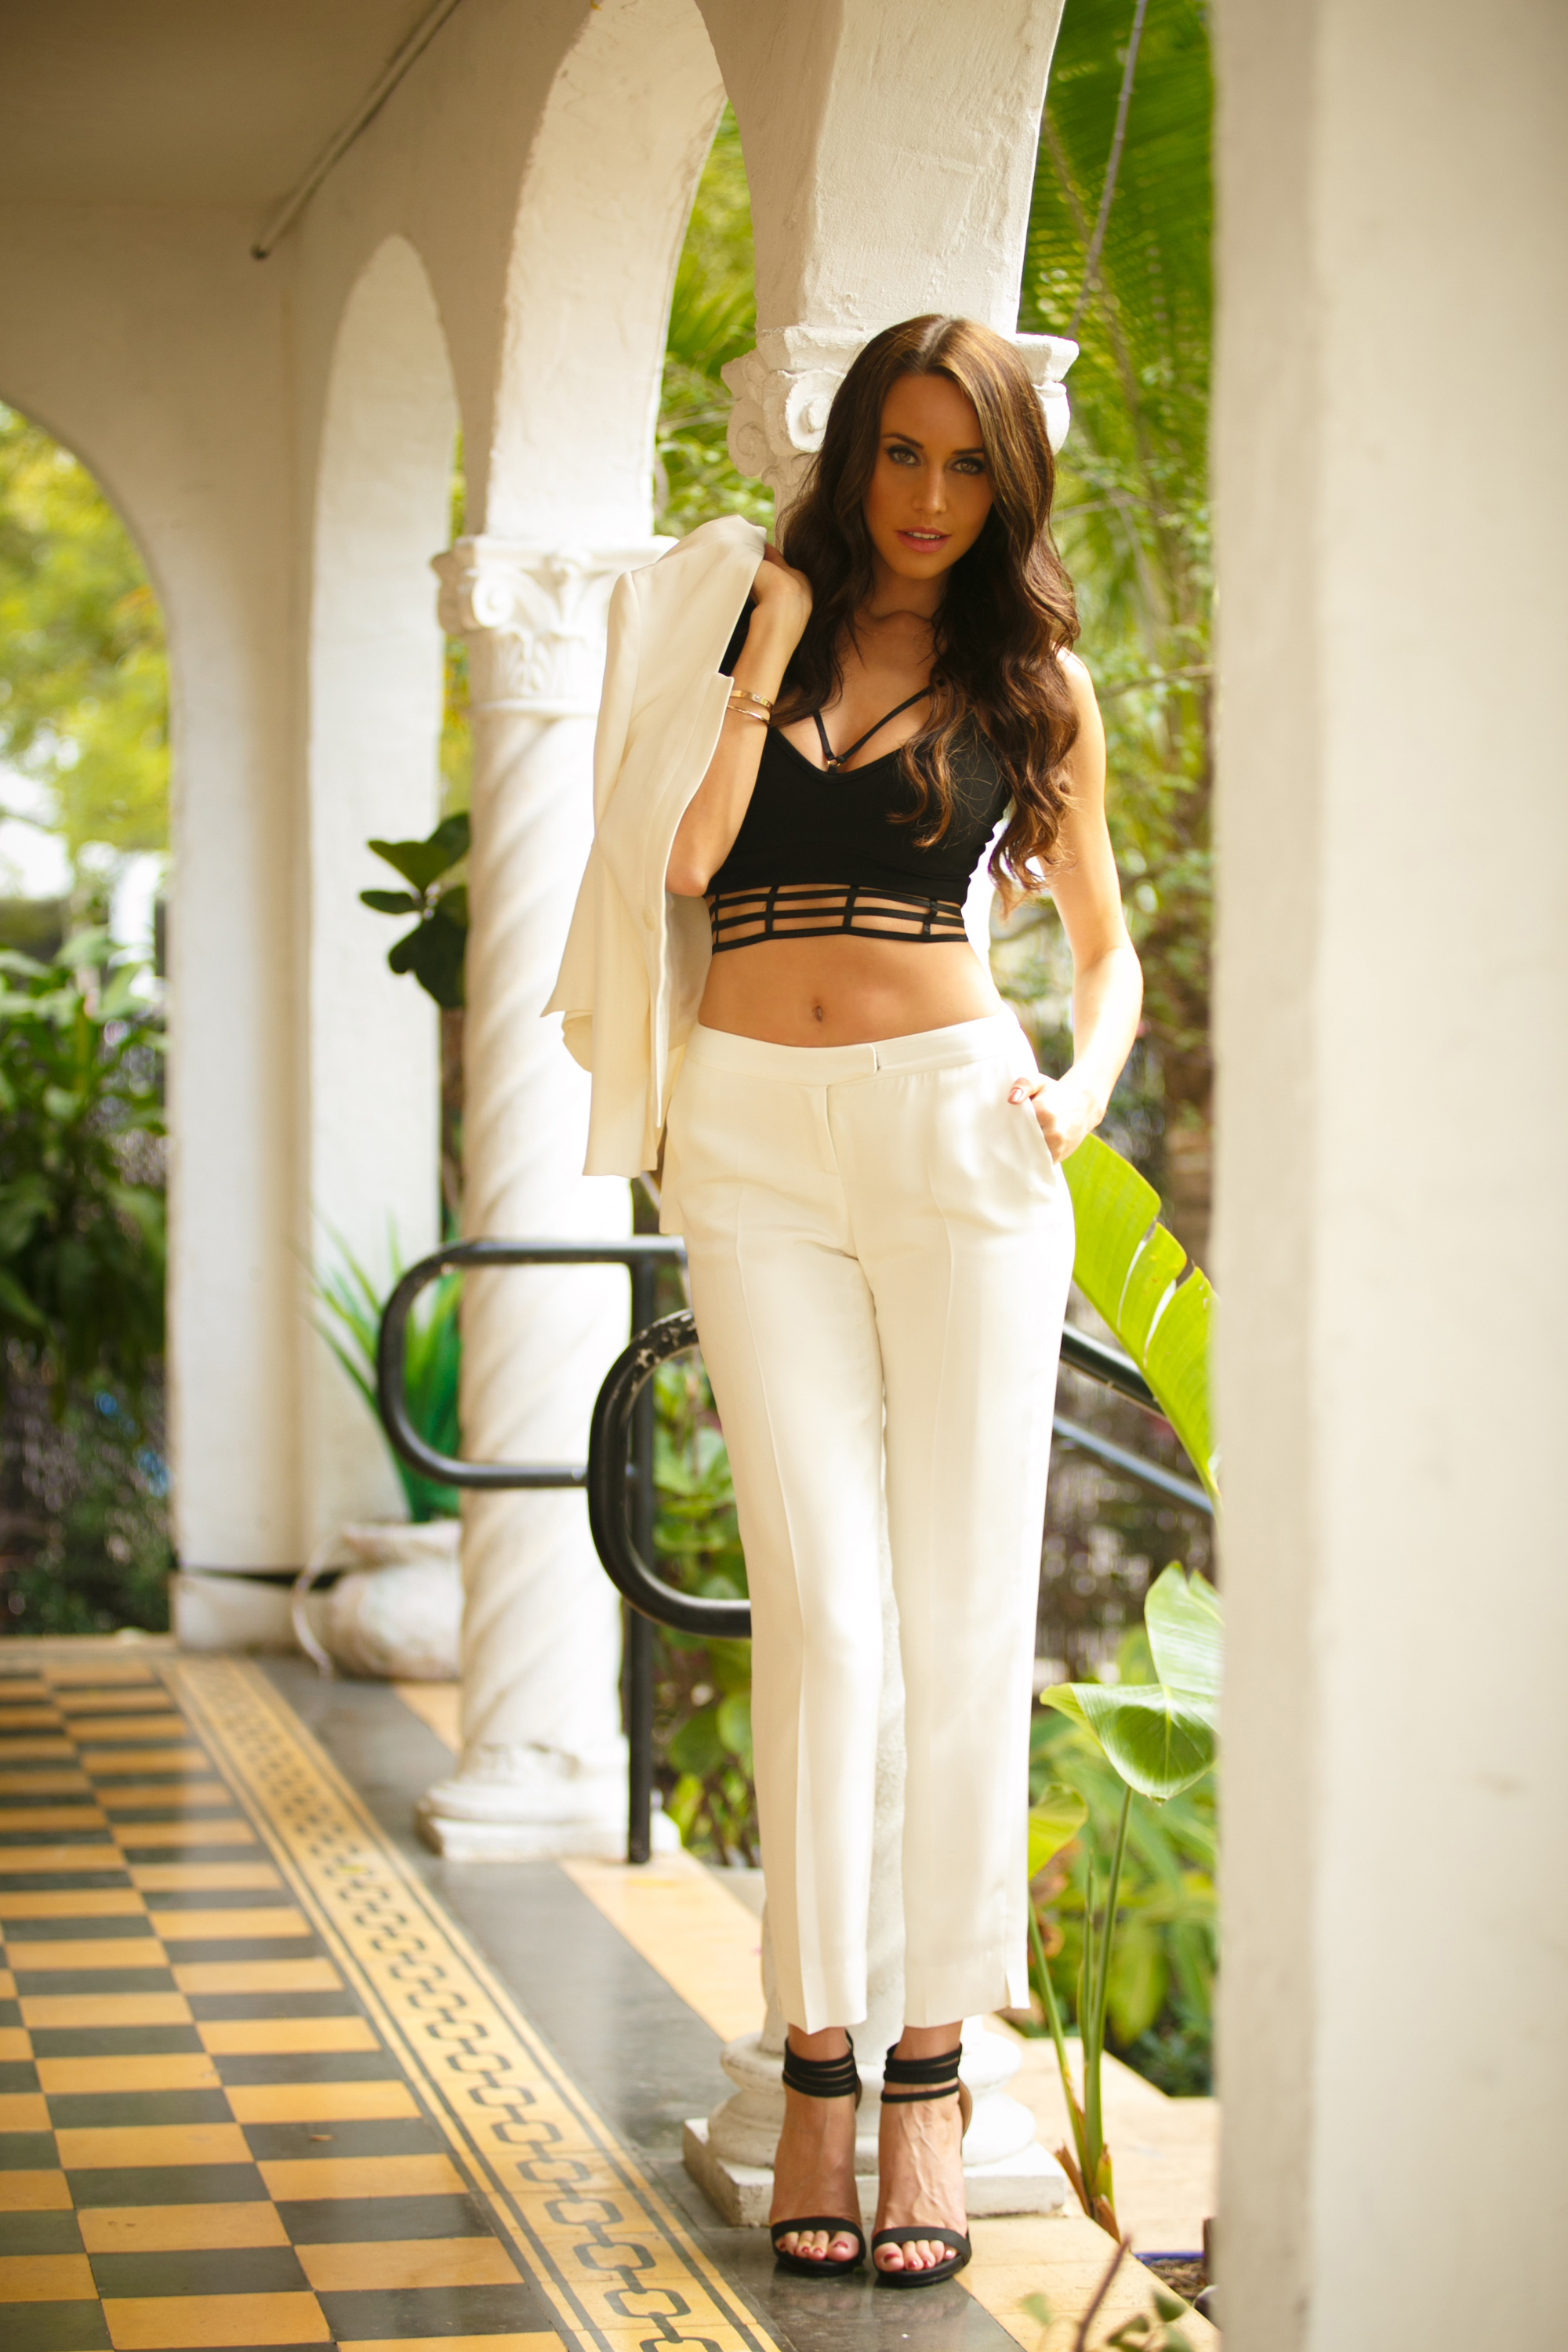 Kora Rae Sting Rae Jacket & Pants,  Premonition Bralette Top,  Shoe Republic LA Heels